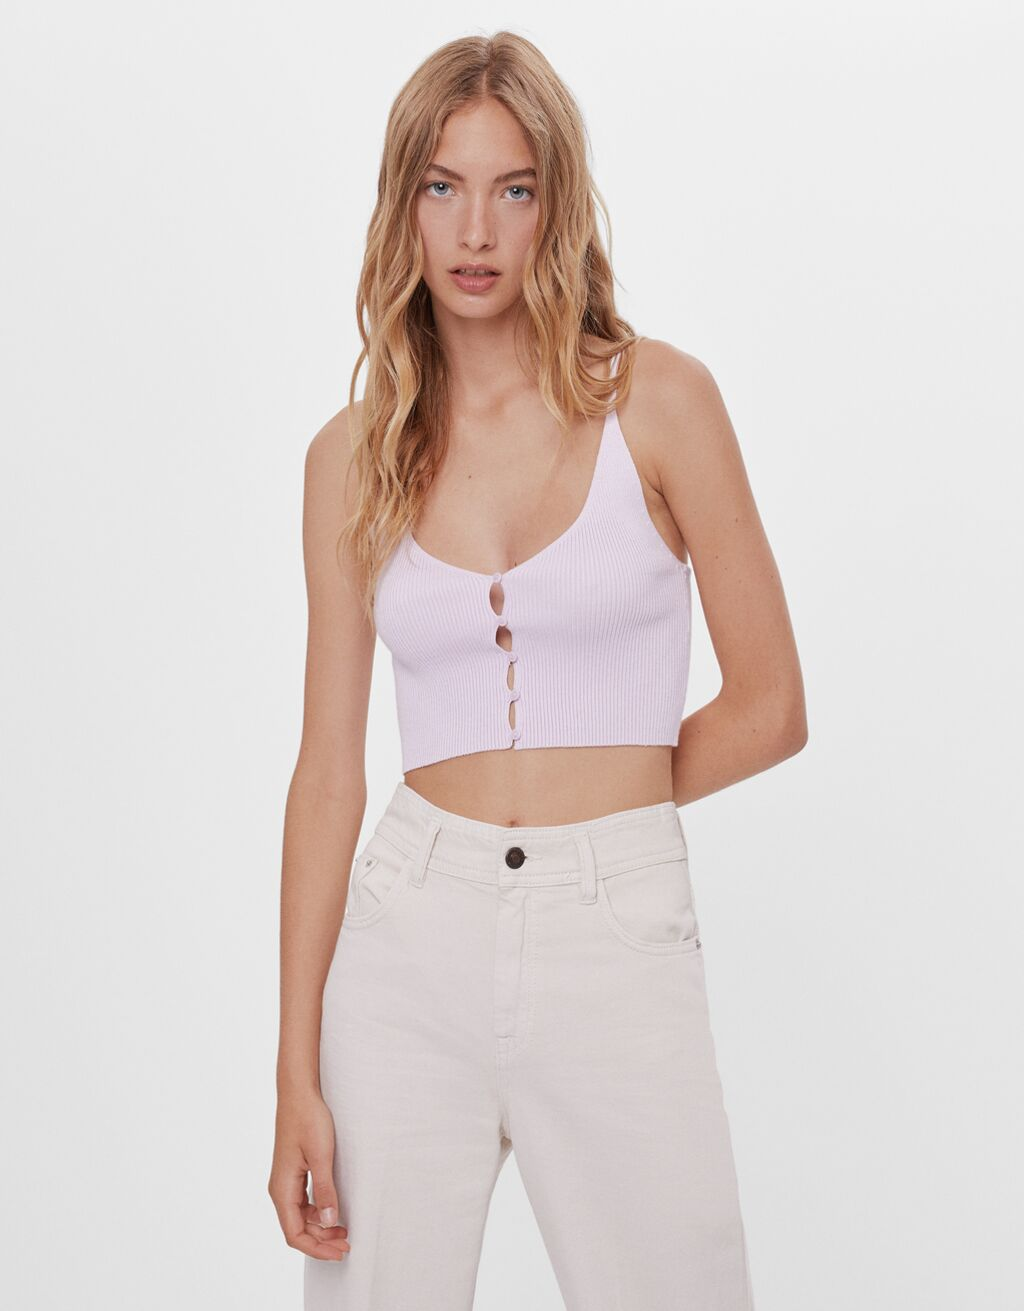 Strappy button-up top